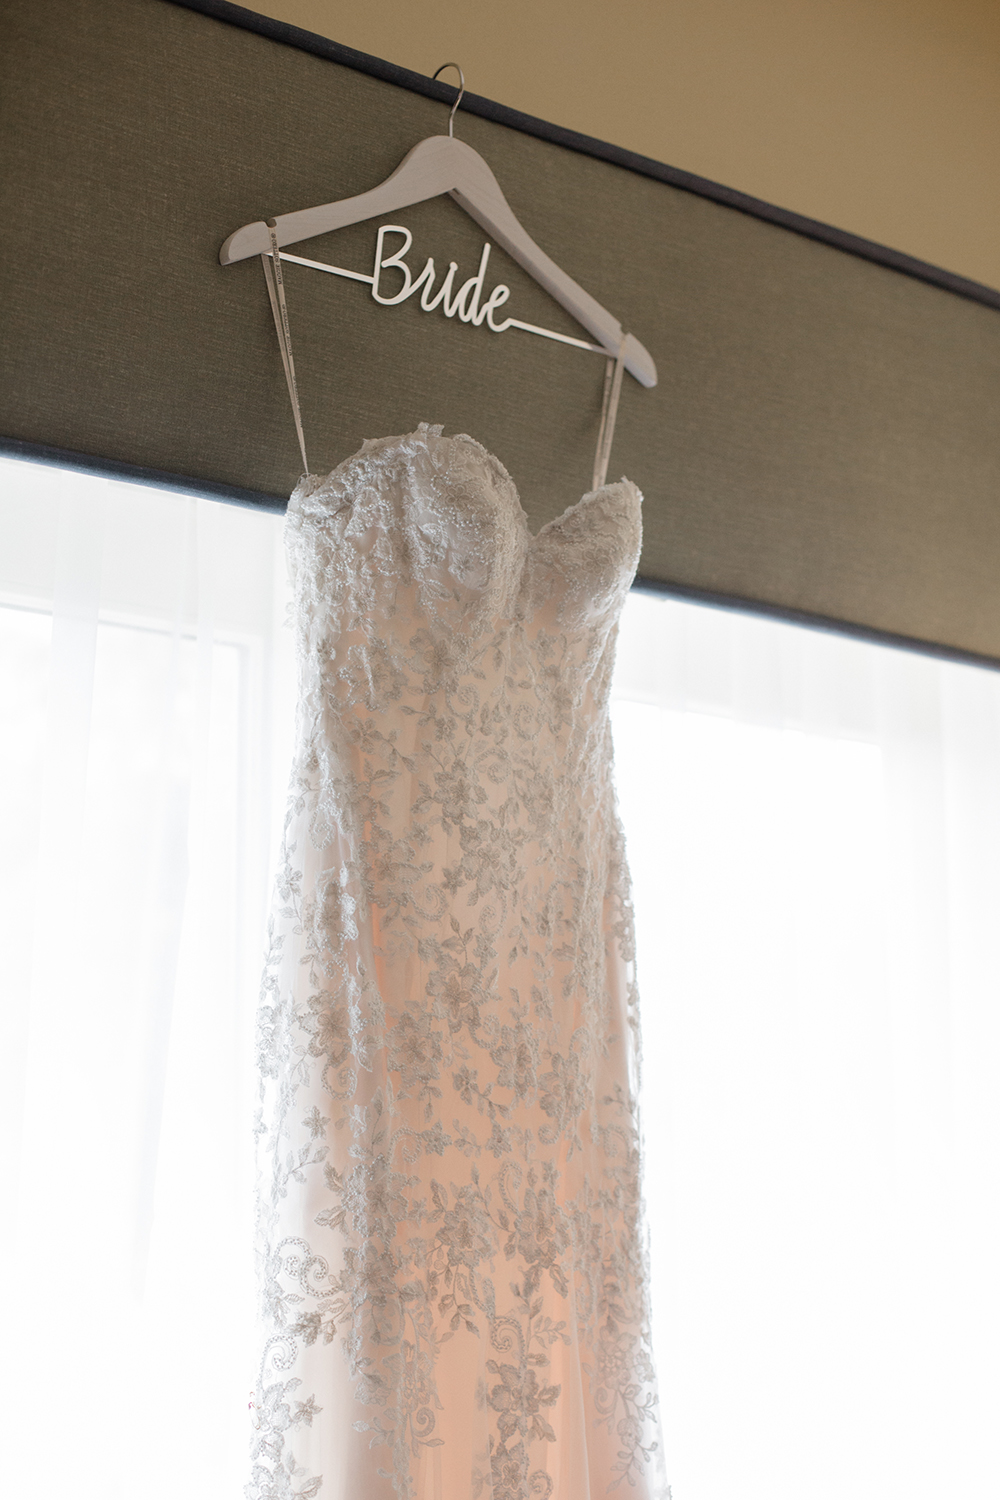 wedding dress photos from a wedding at eagle vines golf club in napa california